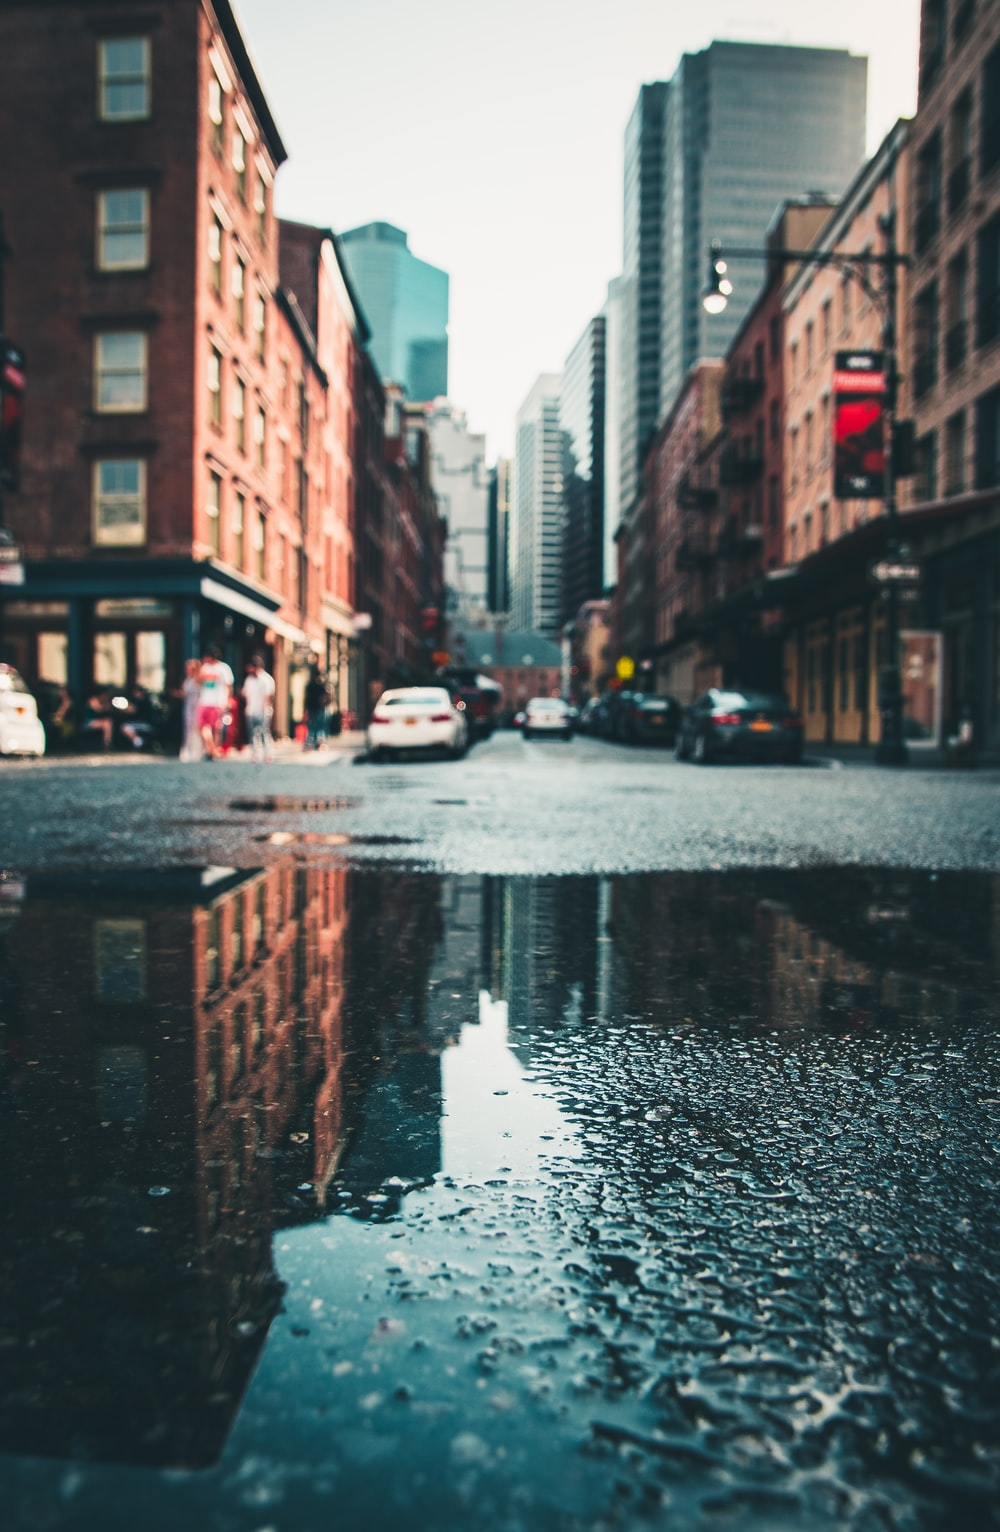 cars parked on wet city street